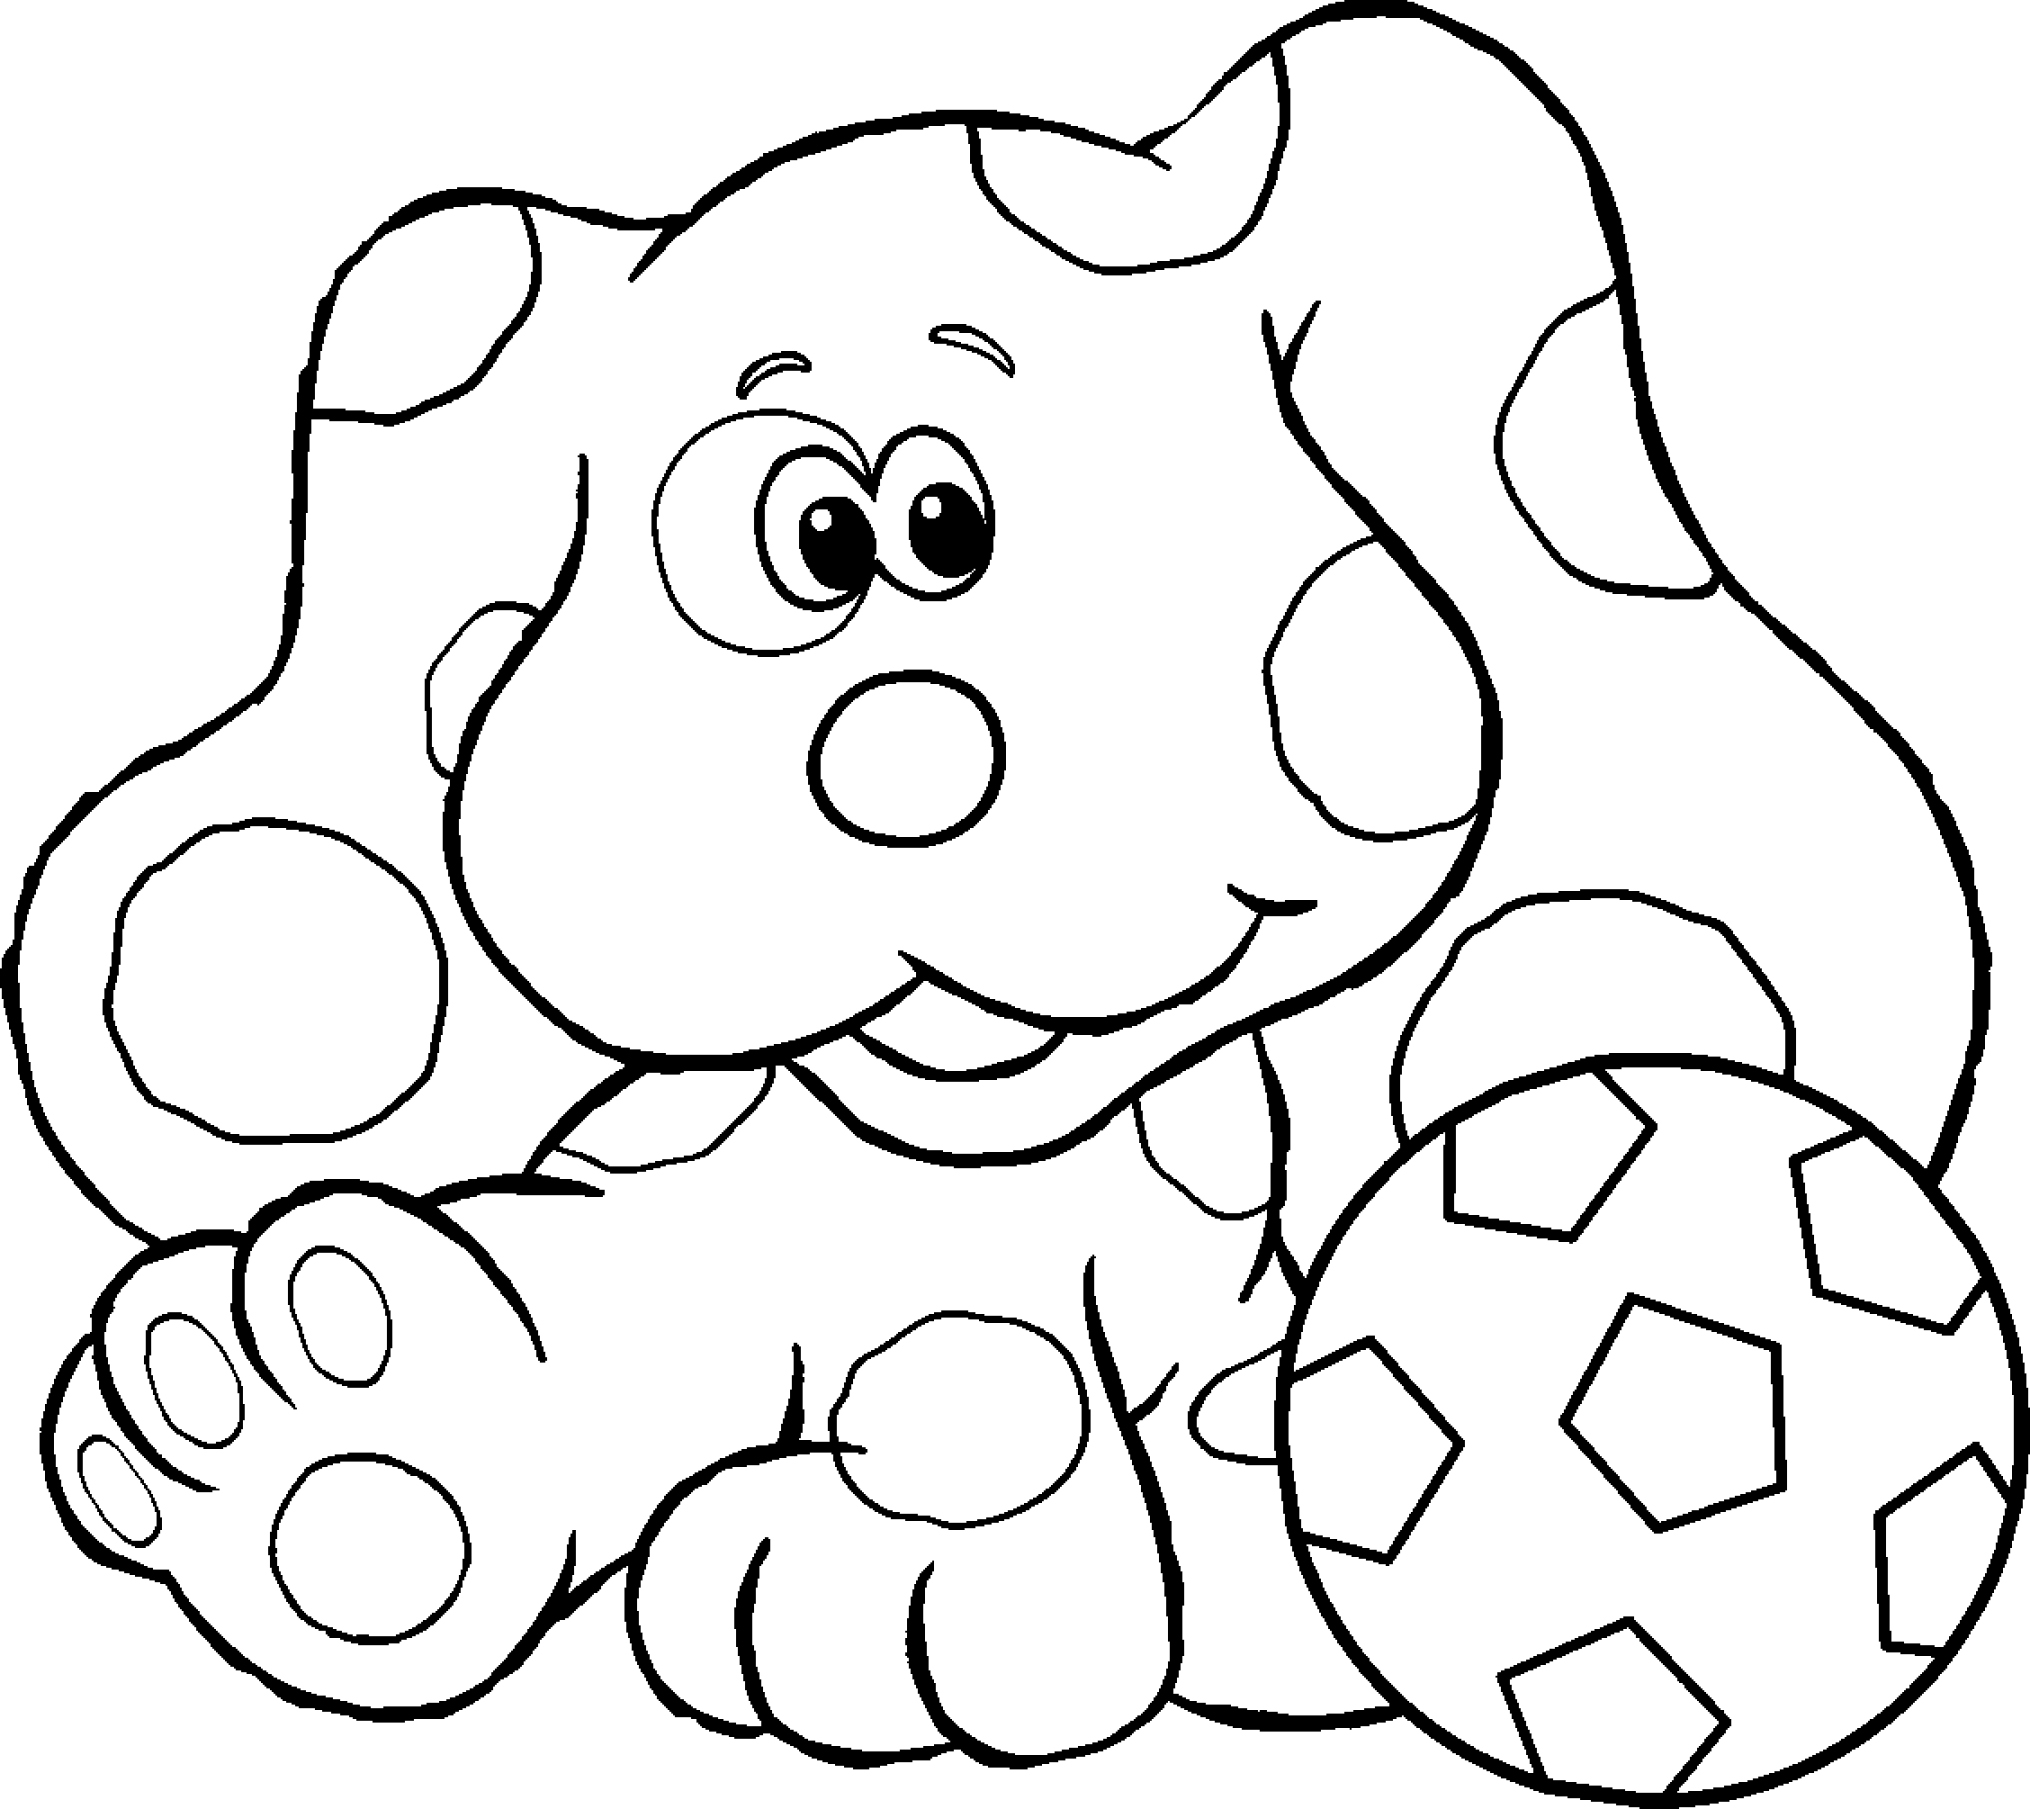 blues clues thanksgiving coloring pages - photo#19